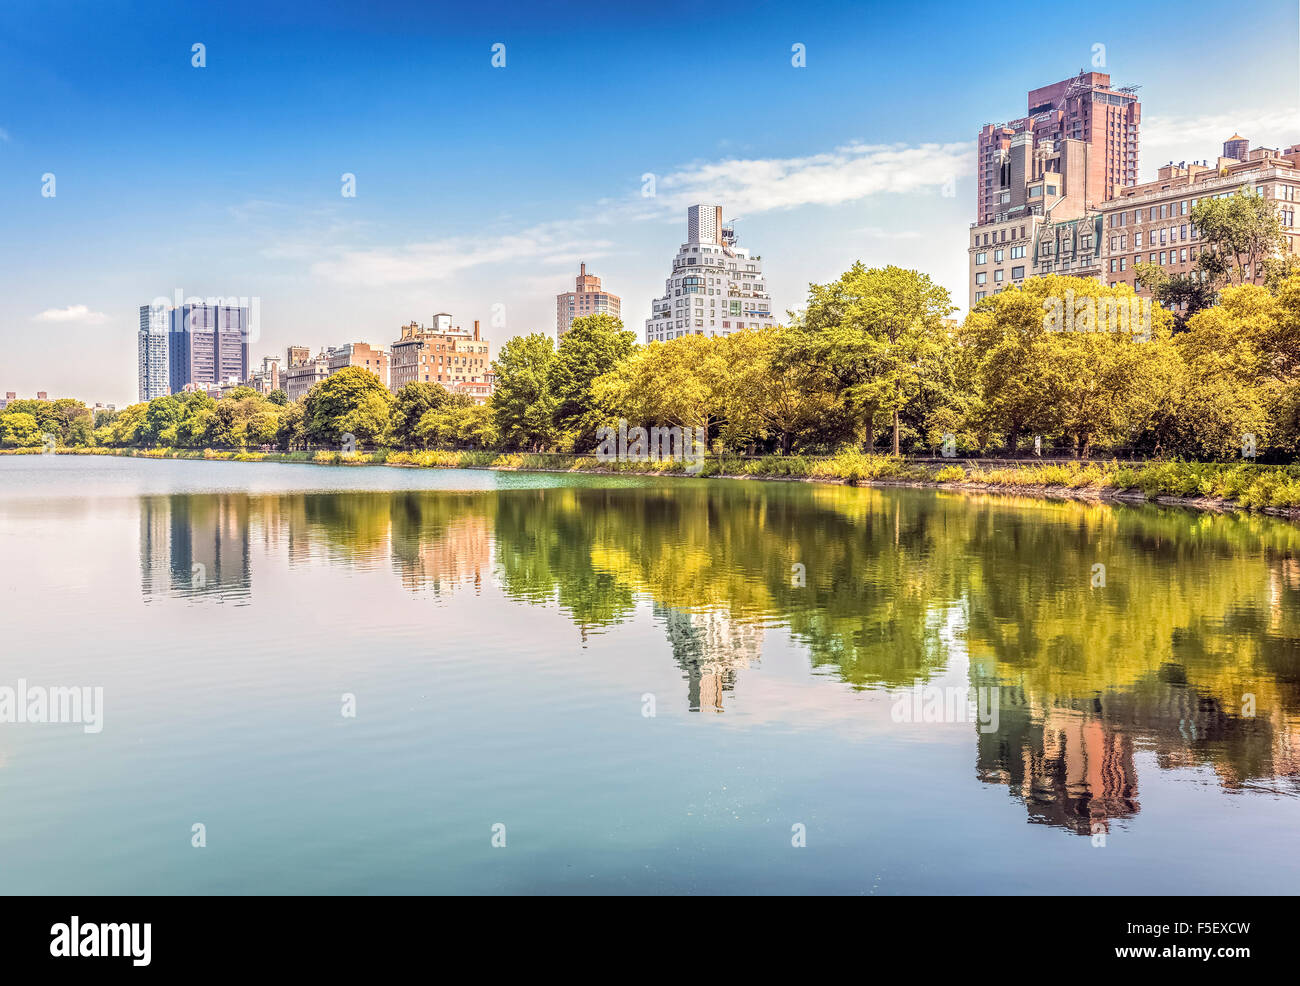 Central Park reflected in lake, New York City, USA. - Stock Image